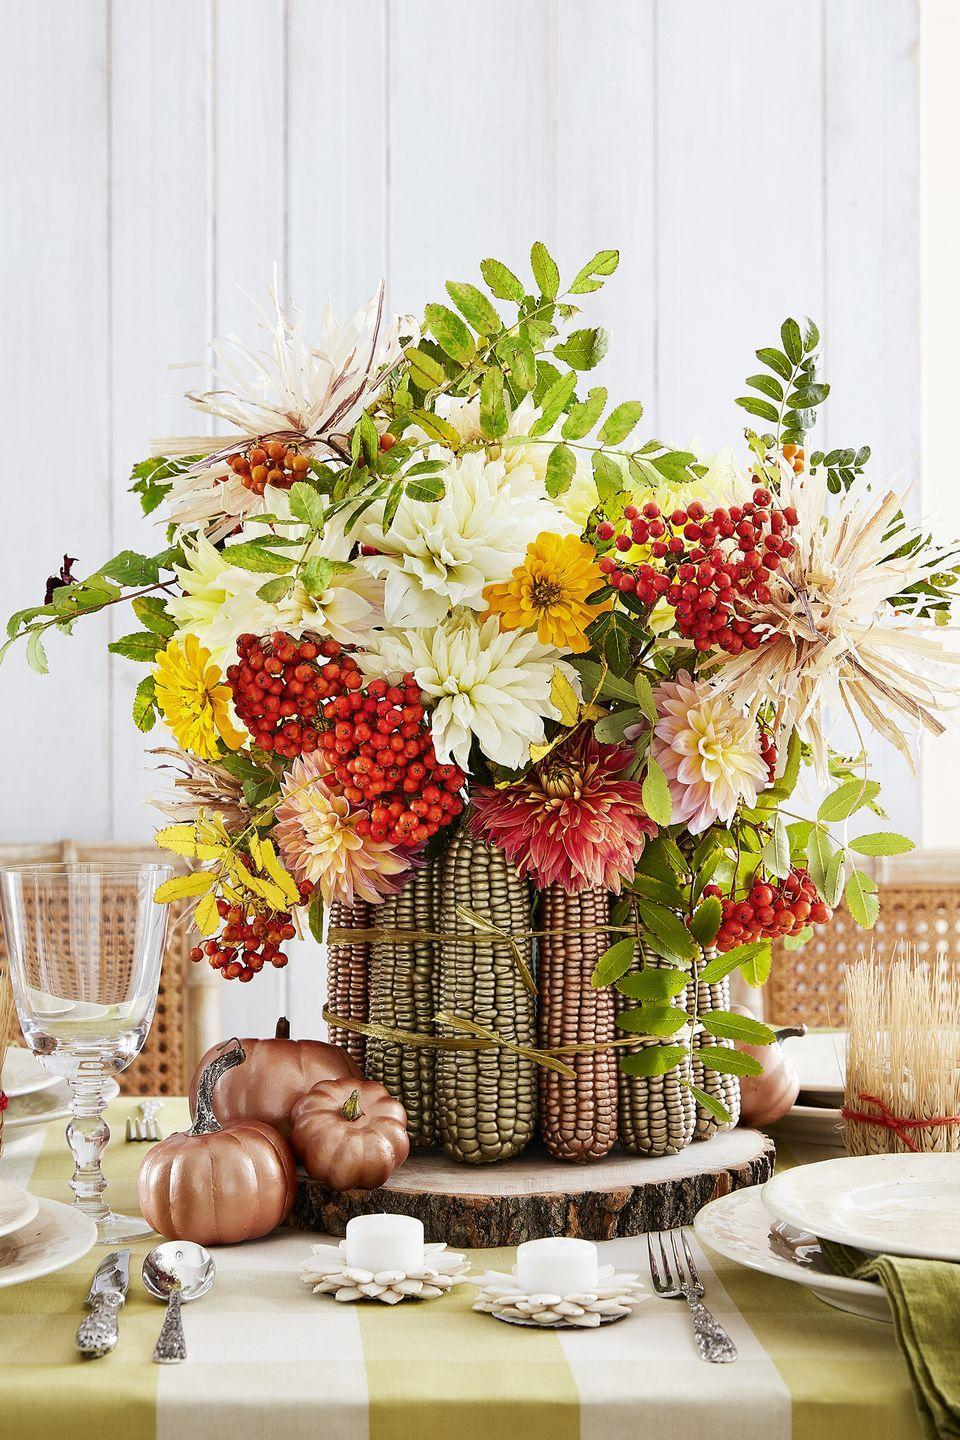 """<p>Give a plain ol' vase some fall flair with this easy idea. Start by coating roughly 14 cobs of dried corn with metallic gold and copper spray paint. Once dry, hot-glue cobs to the perimeter of a 6-inch round vase. Tie it all together with gold raffia. Fill vase with floral foam and add seasonal flowers as desired. (This sampling includes dahlias, zinnias, and mountain ash berries.)</p><p><a class=""""link rapid-noclick-resp"""" href=""""https://www.amazon.com/Iowa-Indian-Corn-Without-husks/dp/B076CVVPV3/ref=sr_1_22?dchild=1&keywords=dried+corn+cobs&qid=1629991146&sr=8-22&tag=syn-yahoo-20&ascsubtag=%5Bartid%7C10050.g.2130%5Bsrc%7Cyahoo-us"""" rel=""""nofollow noopener"""" target=""""_blank"""" data-ylk=""""slk:SHOP DRIED CORN"""">SHOP DRIED CORN</a></p>"""